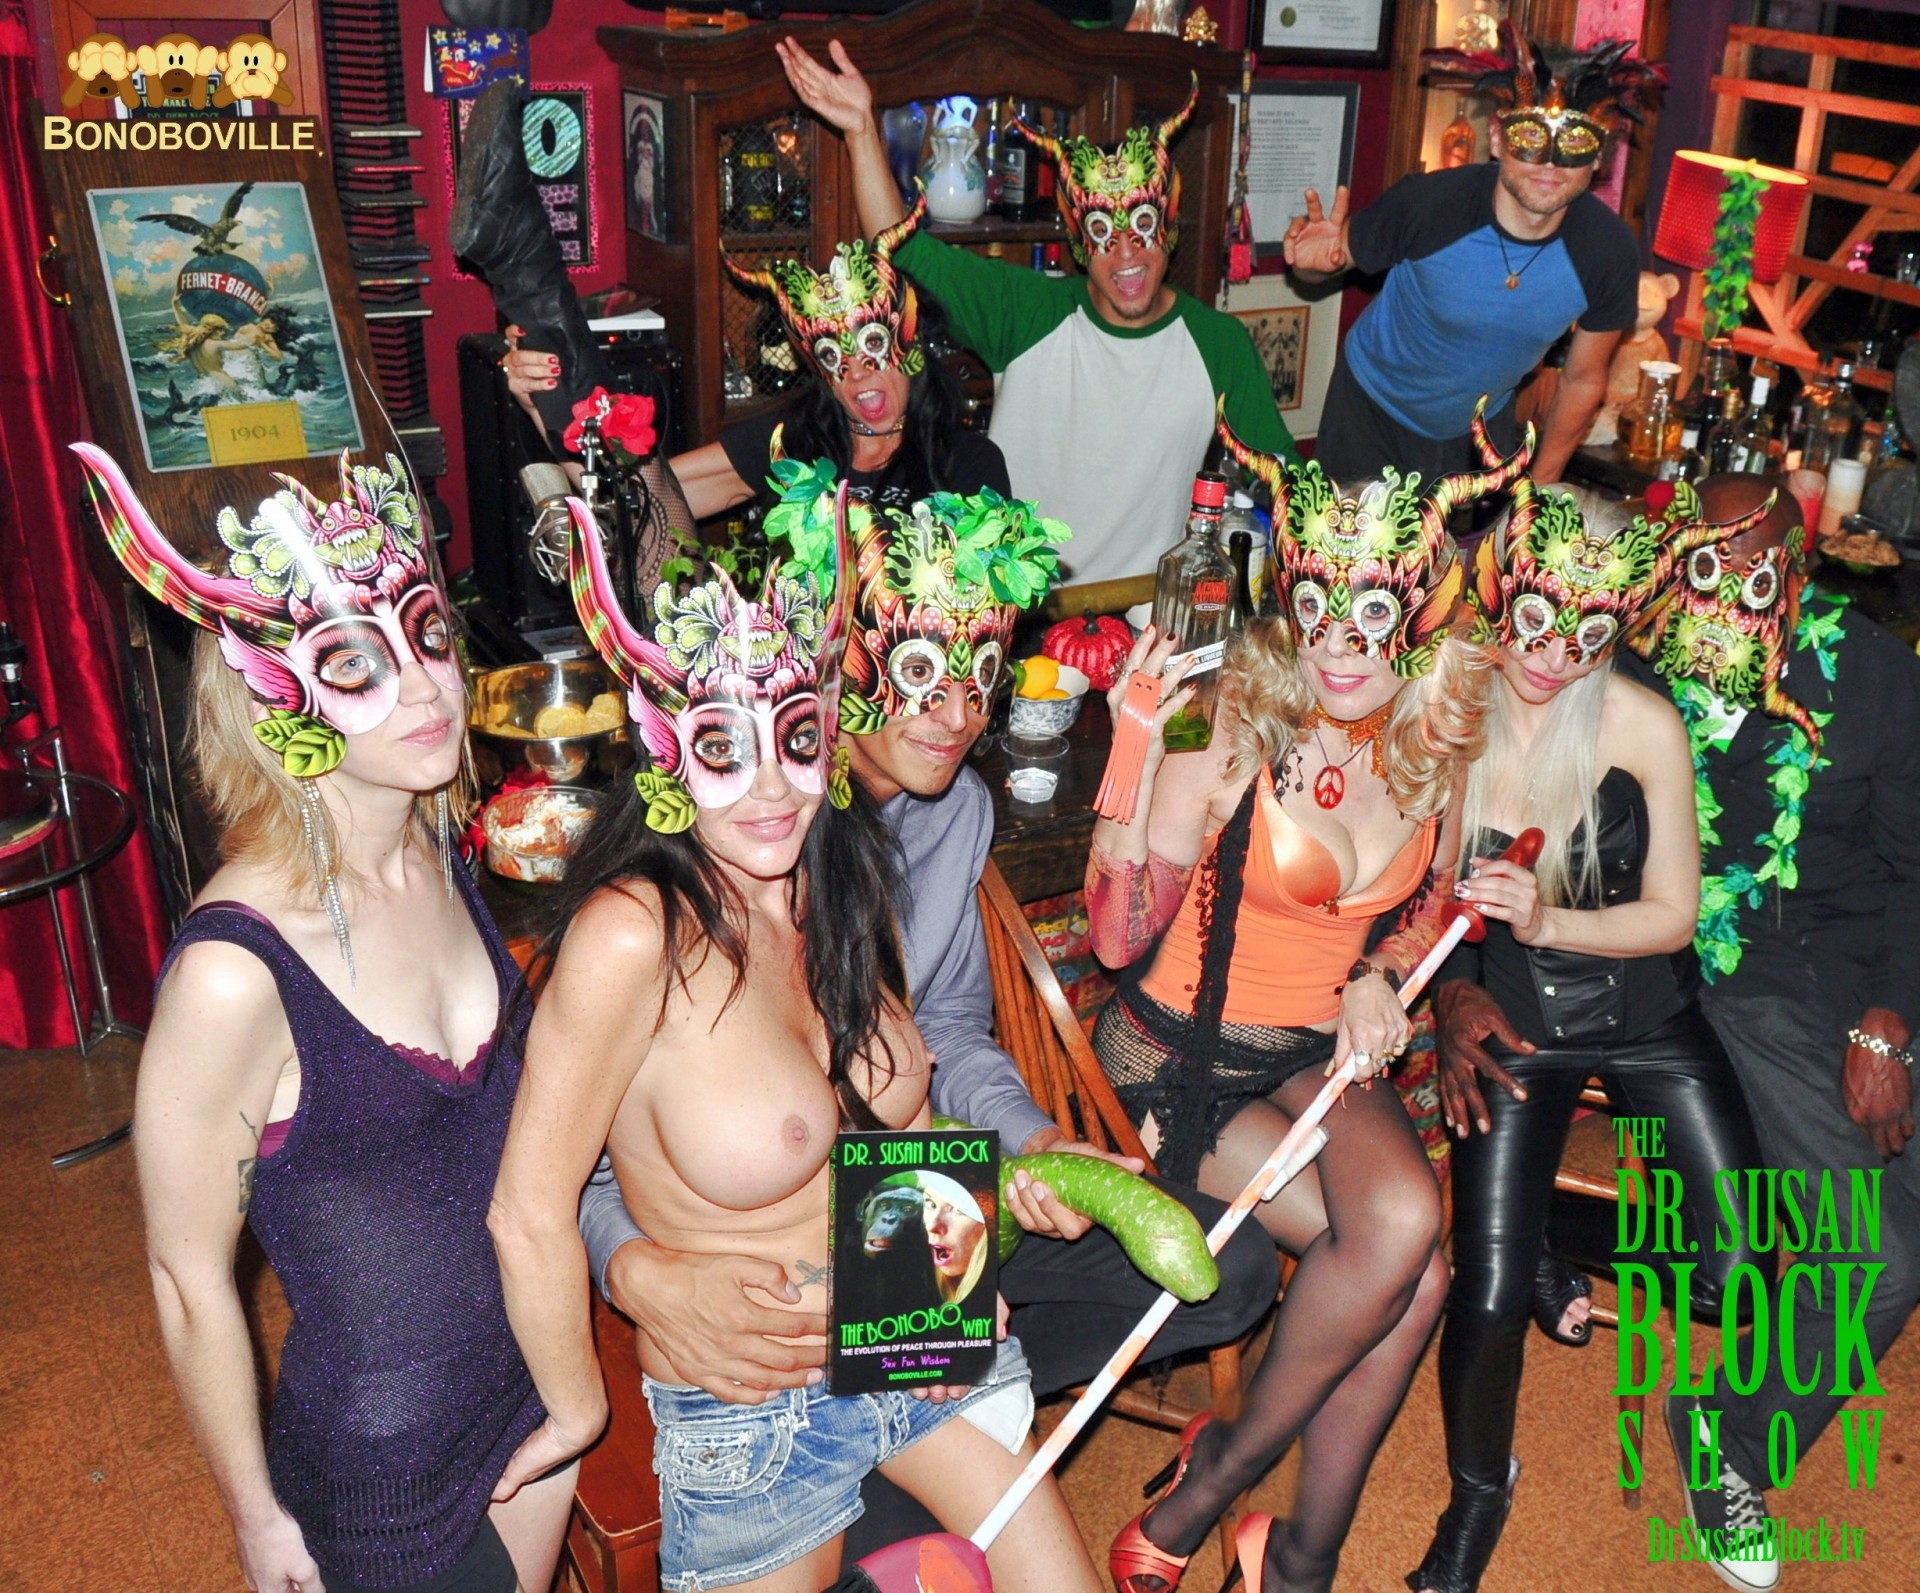 The Agw Masked Witches of Bonoboville. Photo: Ringo